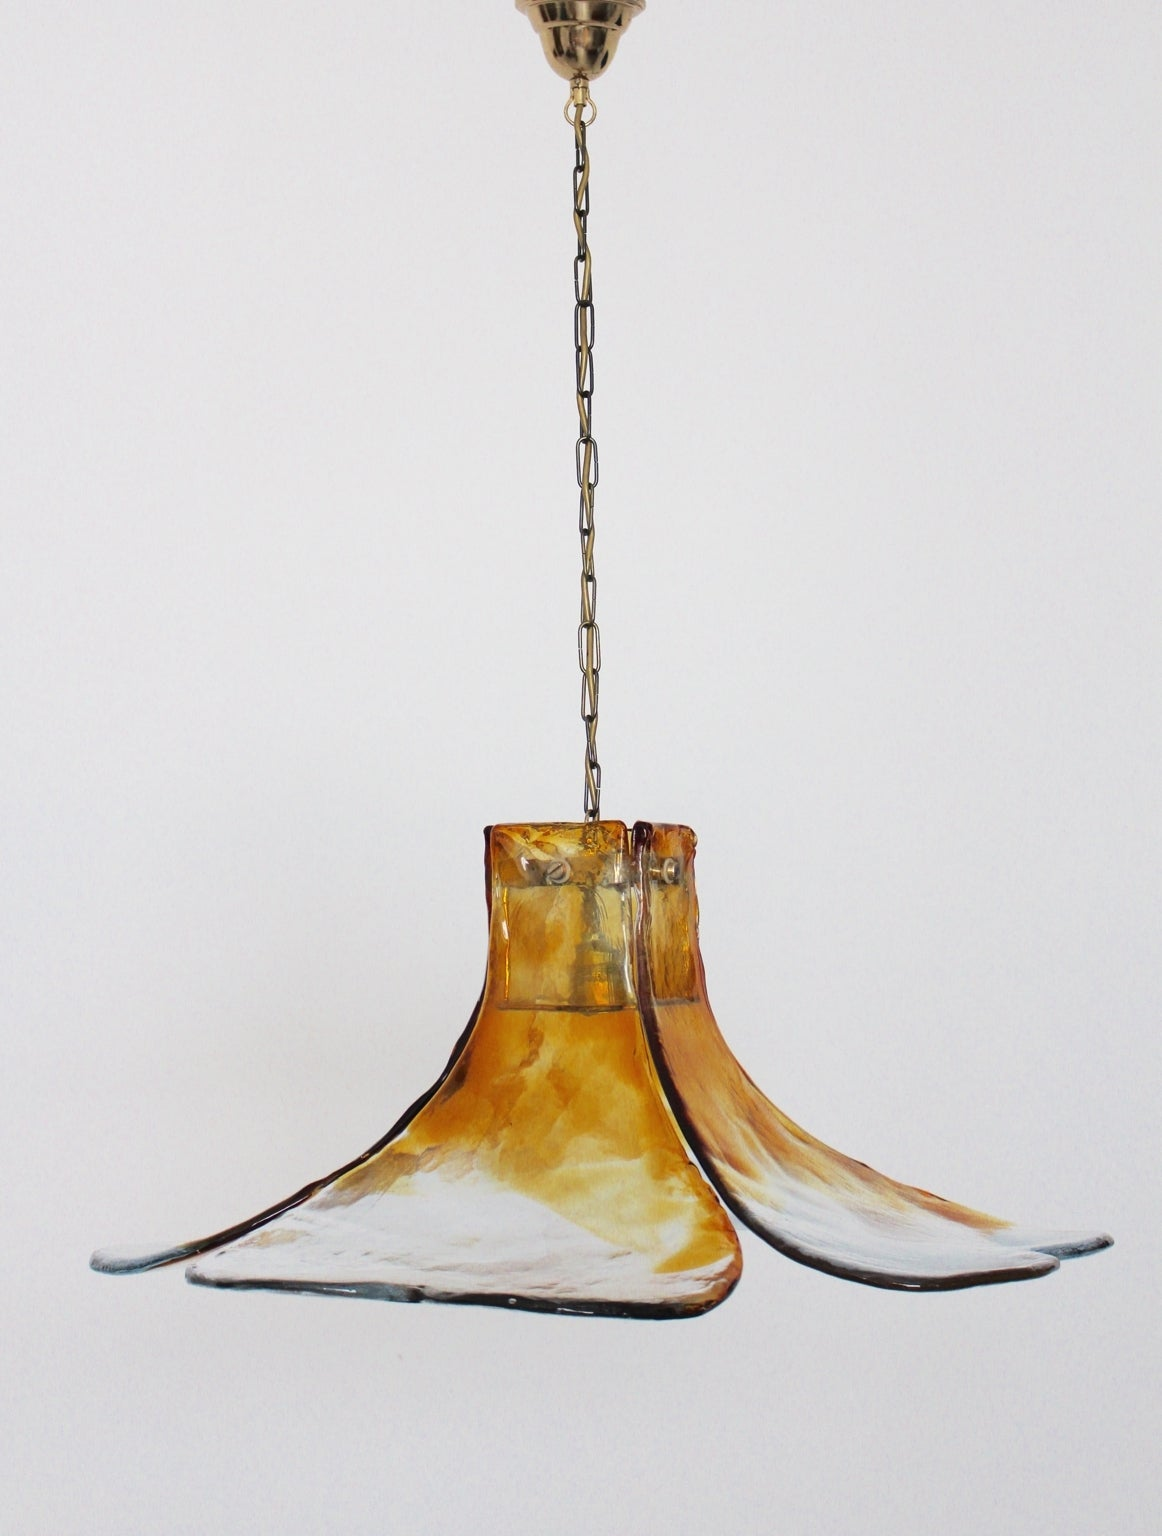 Amber Midcentury Glass Flower Chandelier by Carlo Nason Murano, 1960s In Excellent Condition For Sale In Vienna, AT